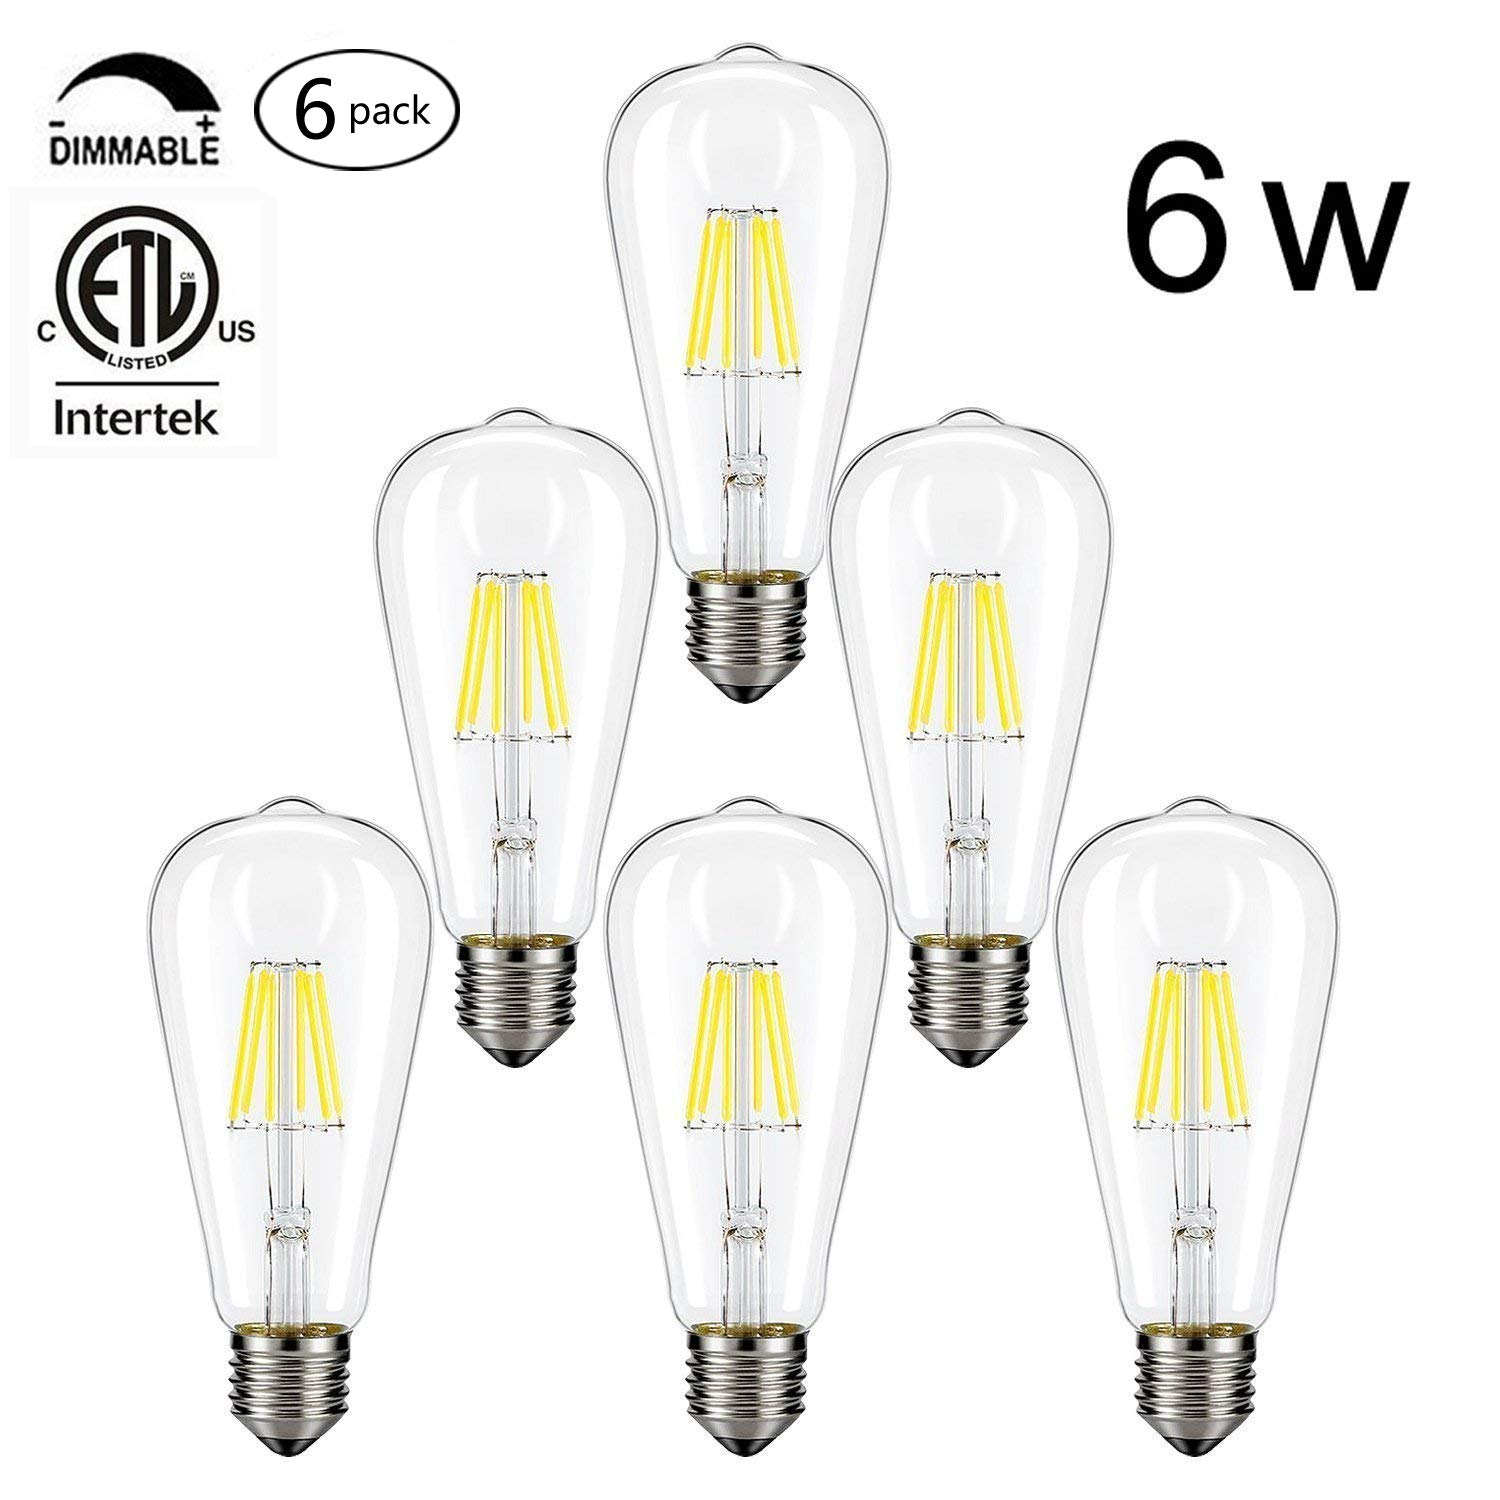 Cmyk Vintage Edison Led Bulb Dimmable 6w St64 Antique Light Wiring Diagram Leviton 660 Squirrel Cage Filament For Decorate Home E26 4000k Soft White Pack Of 6daylight